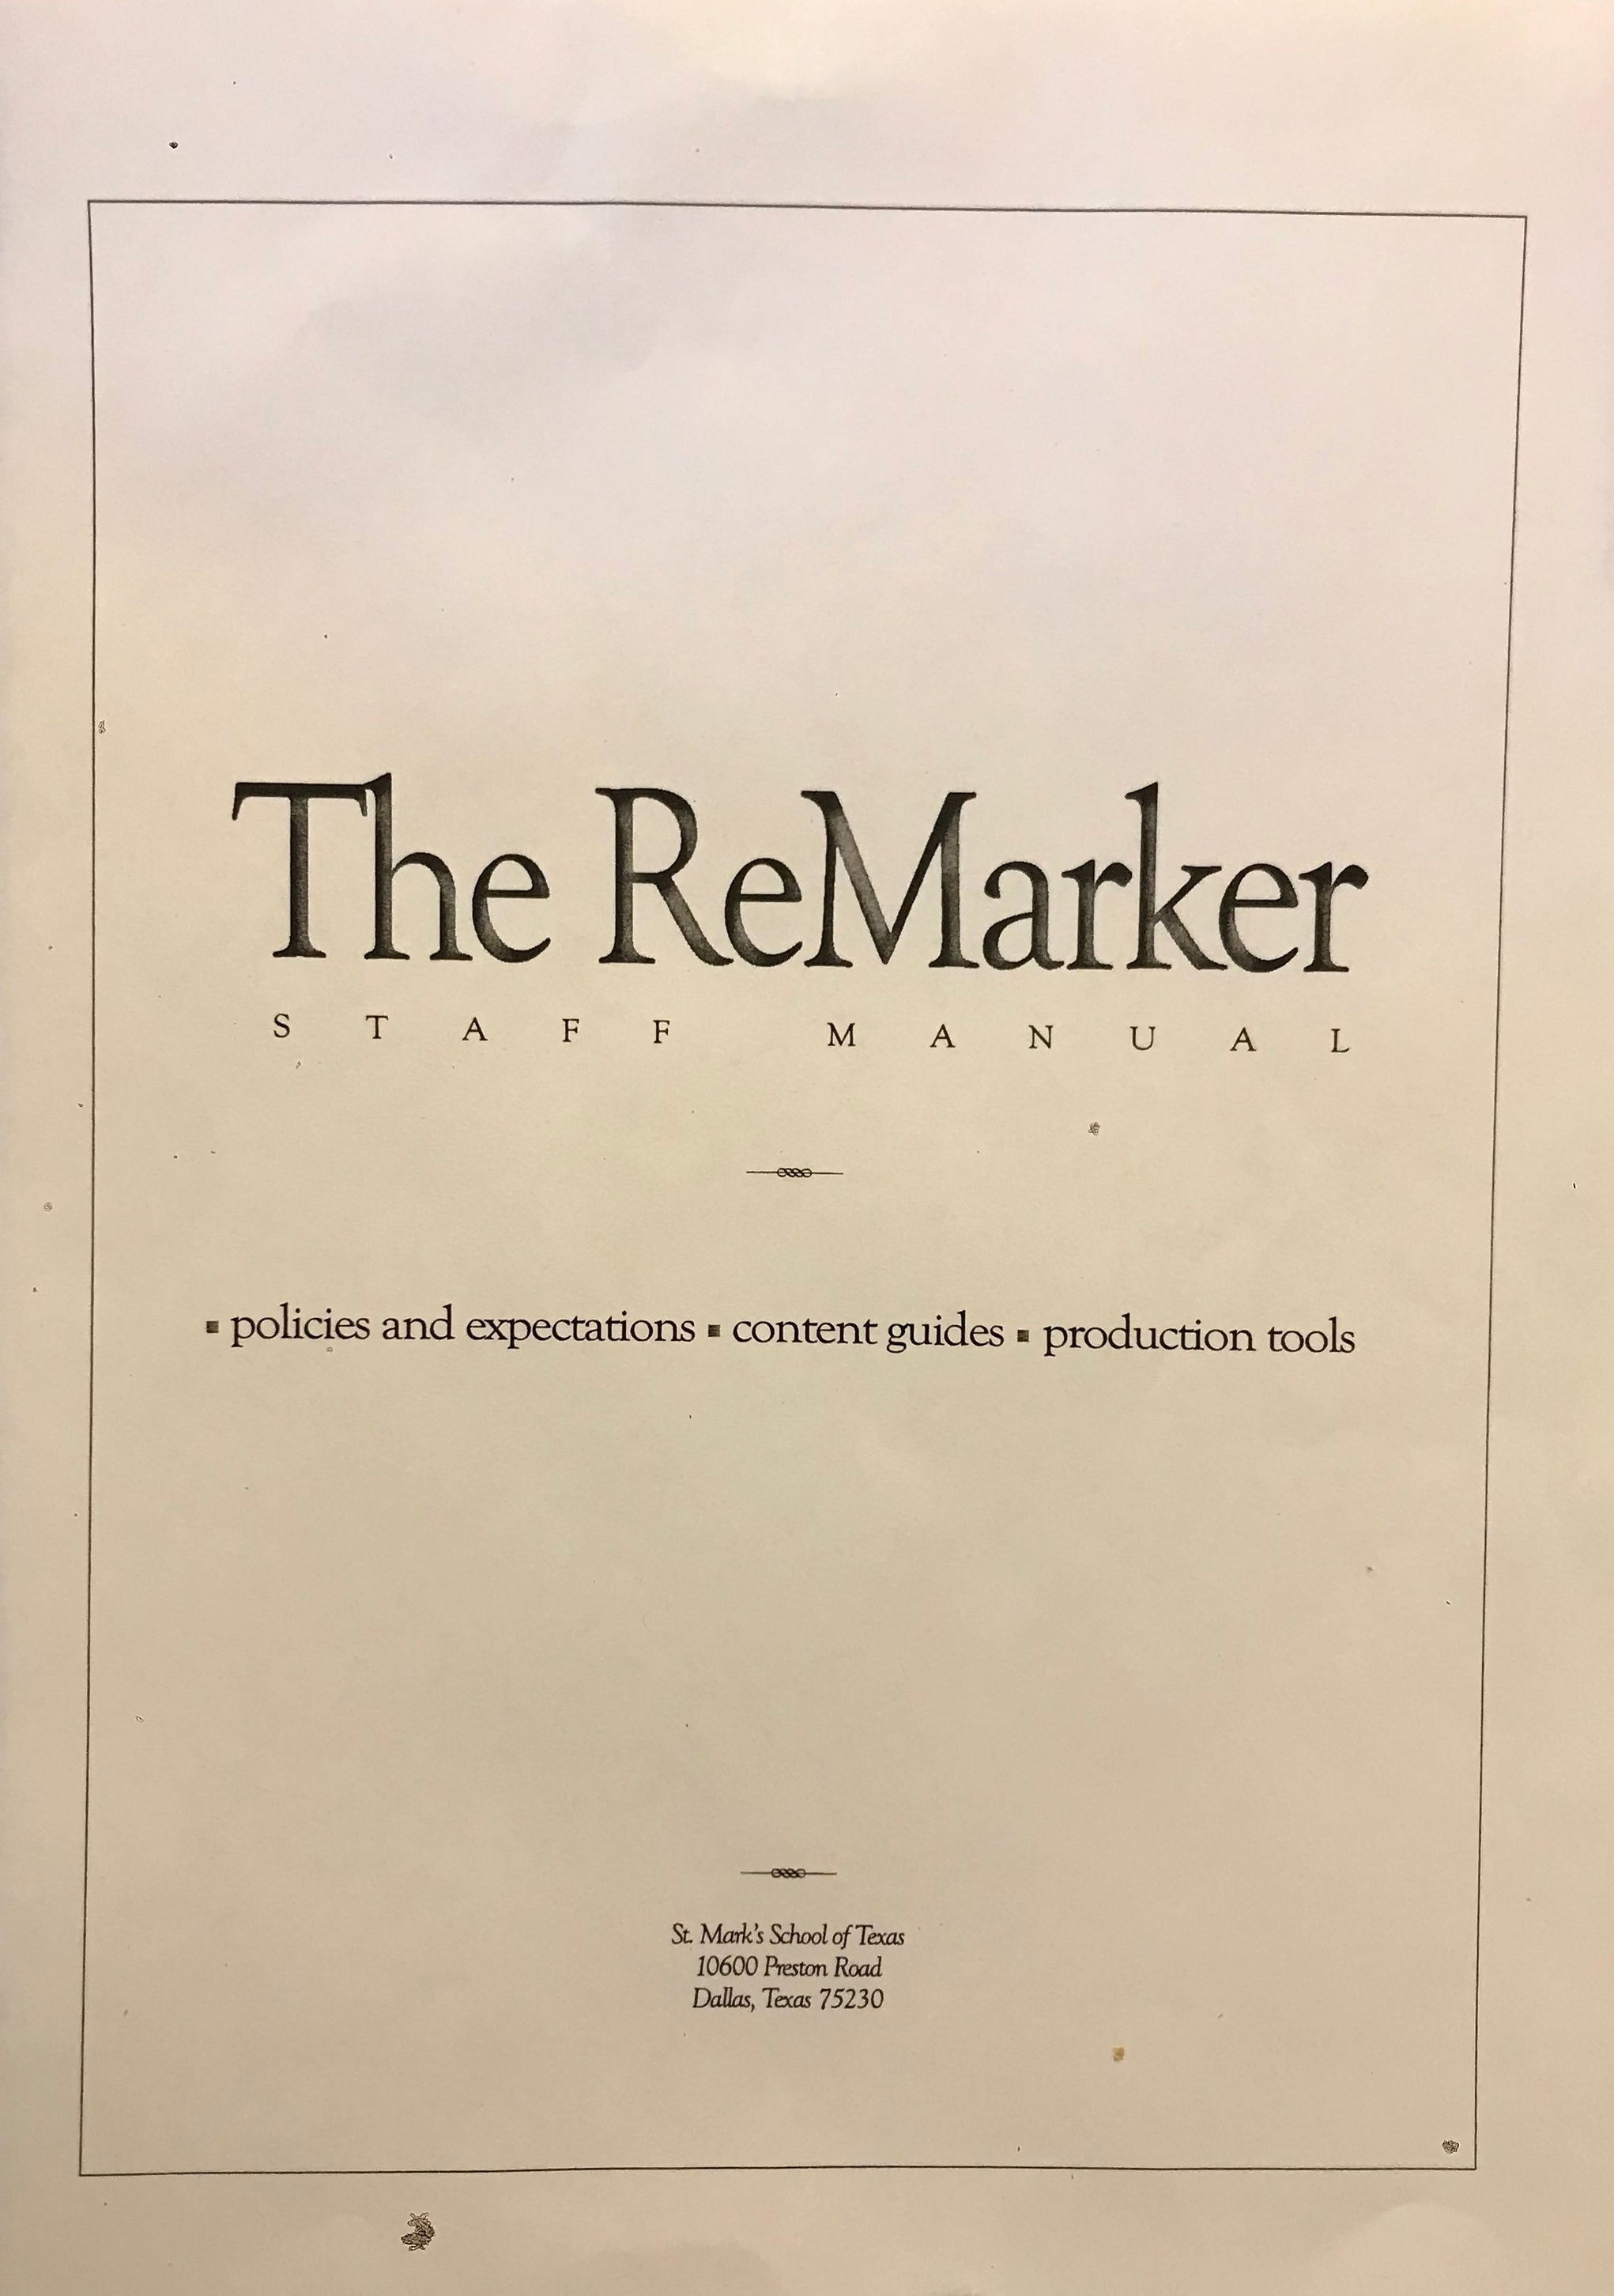 The cover for  The ReMarker  staff manual. There are over a dozen copies of this nearly 100-page manual spread across the publications suite.